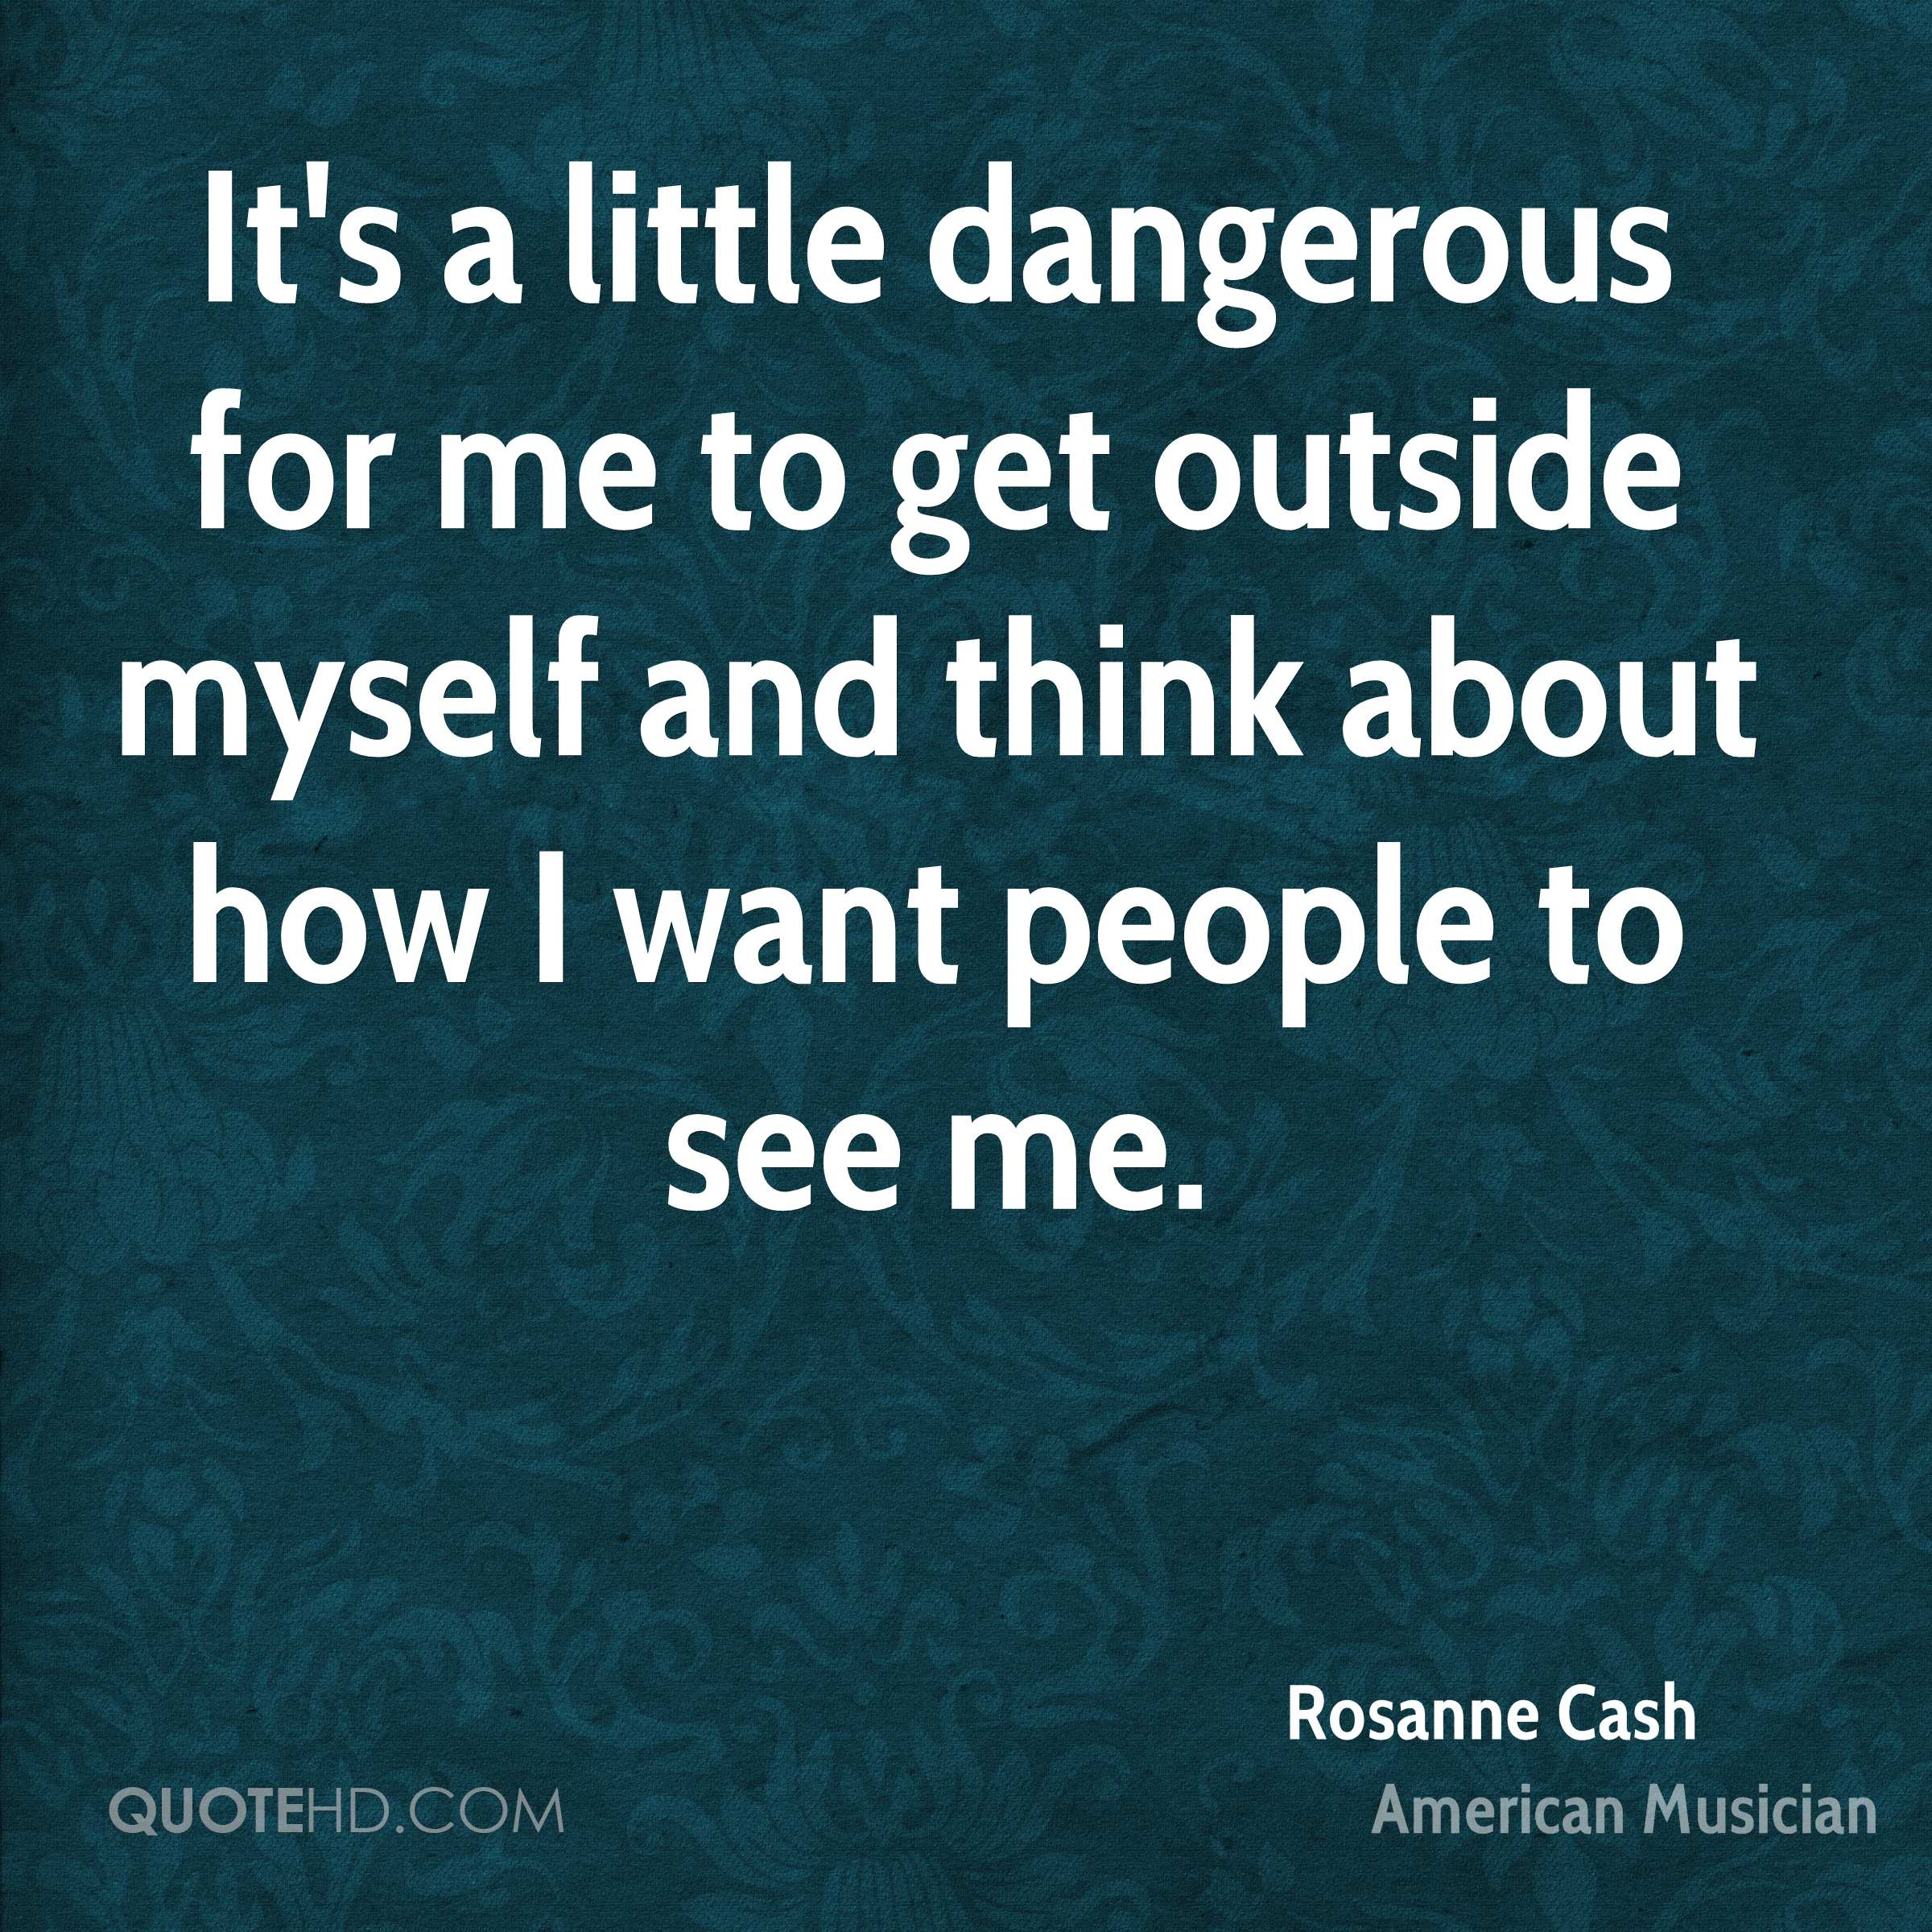 It's a little dangerous for me to get outside myself and think about how I want people to see me.